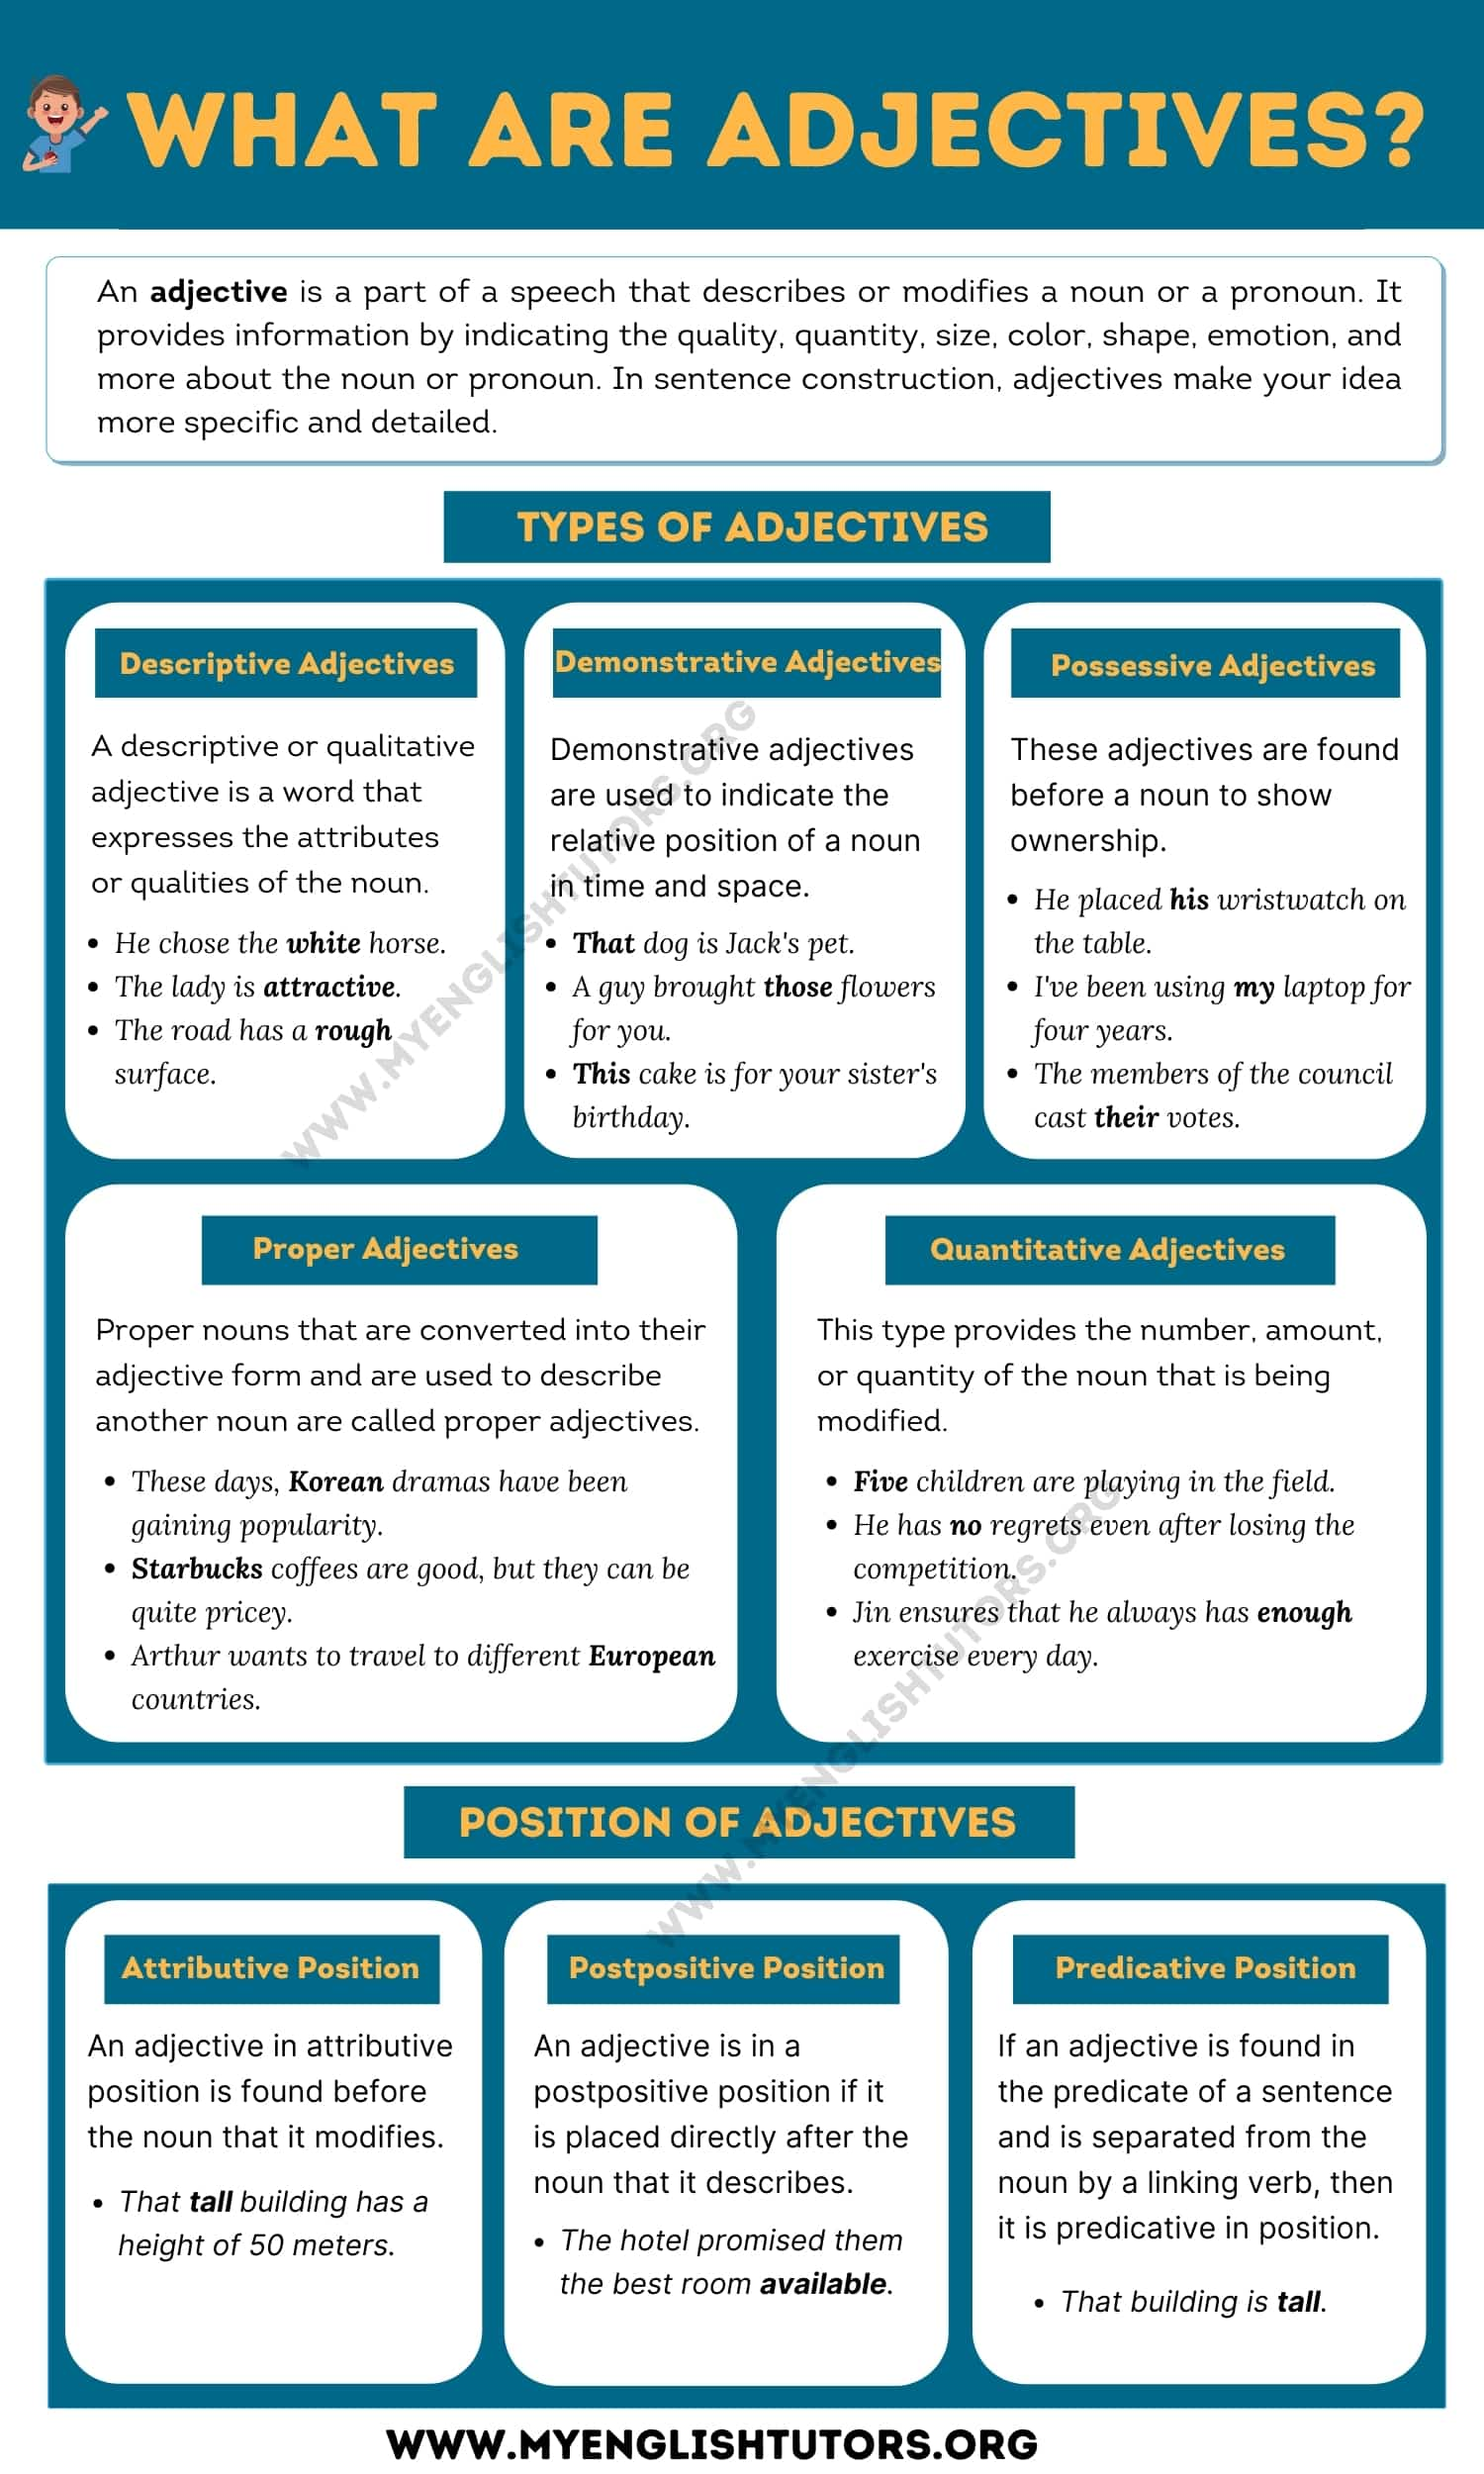 What Are Adjectives? Types of Adjectives & Useful Examples